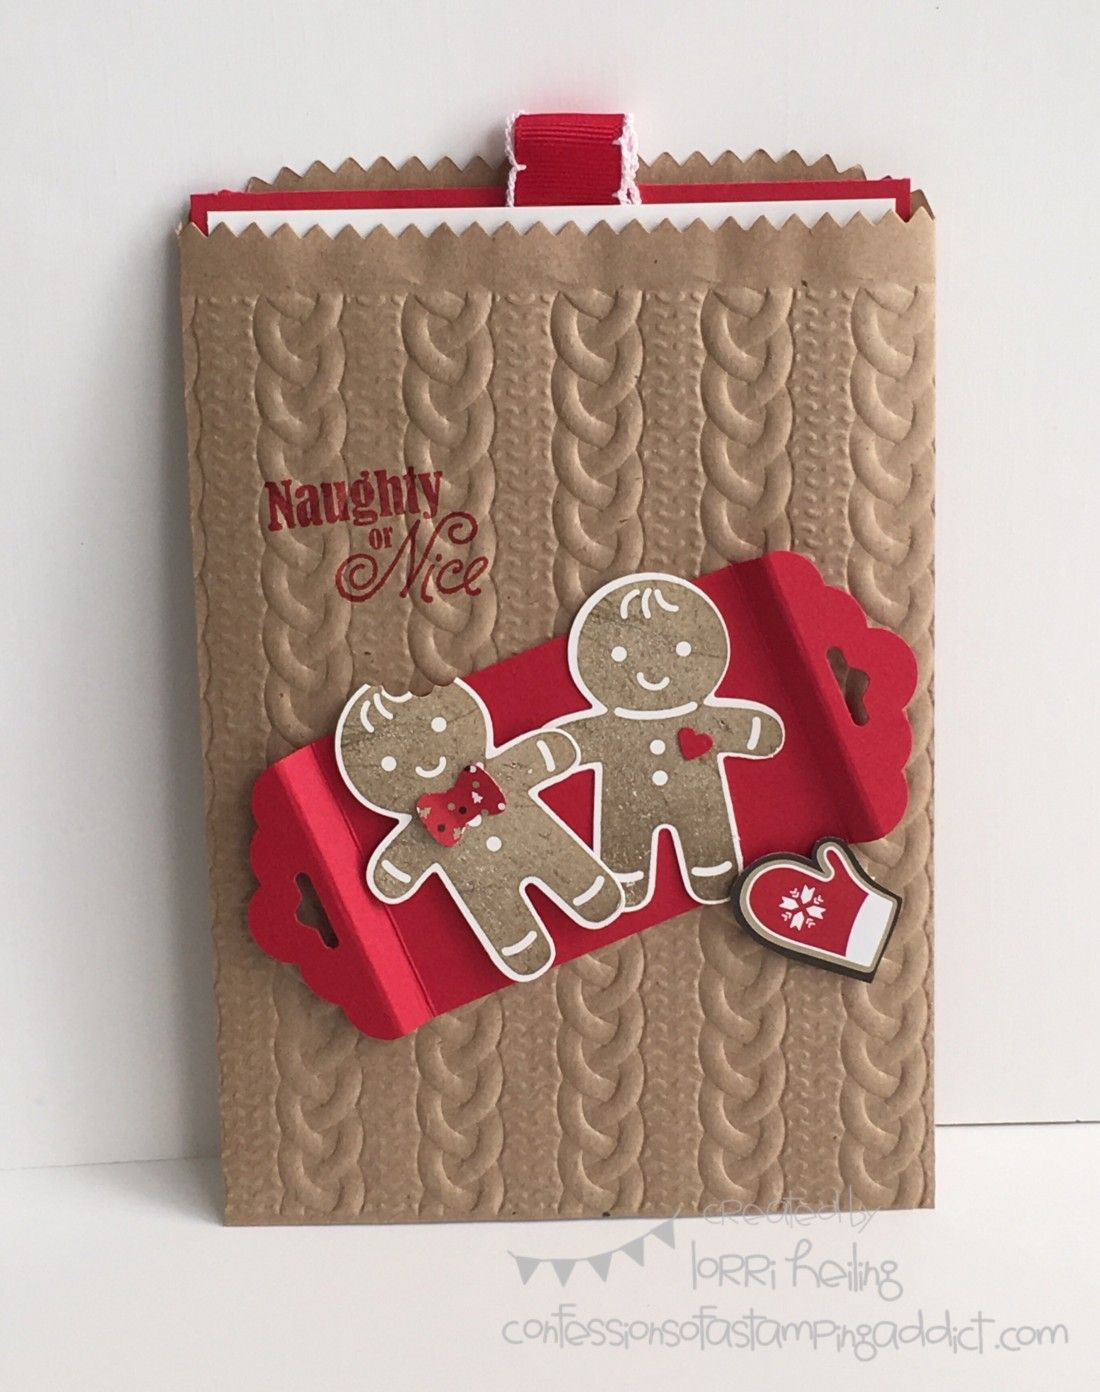 Gift Card Holder with Cookie Cutter Christmas (Confessions of a ...